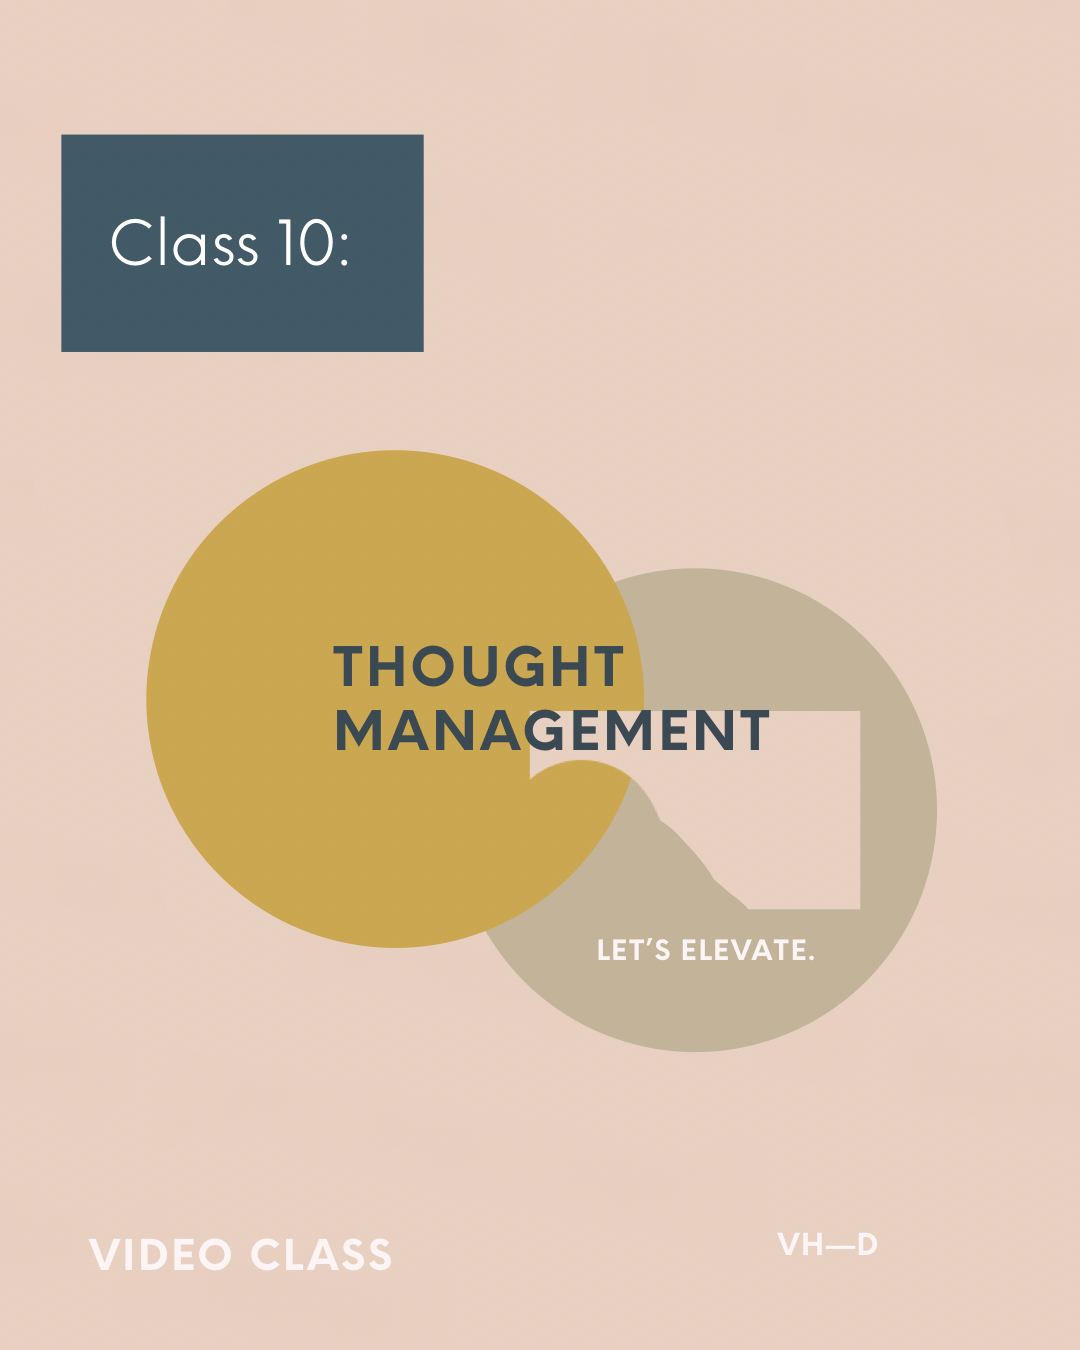 Subject 10: Thought Management - Video classLet's elevate and liberate!Is your mind free, balanced, and in harmony with your highest good?